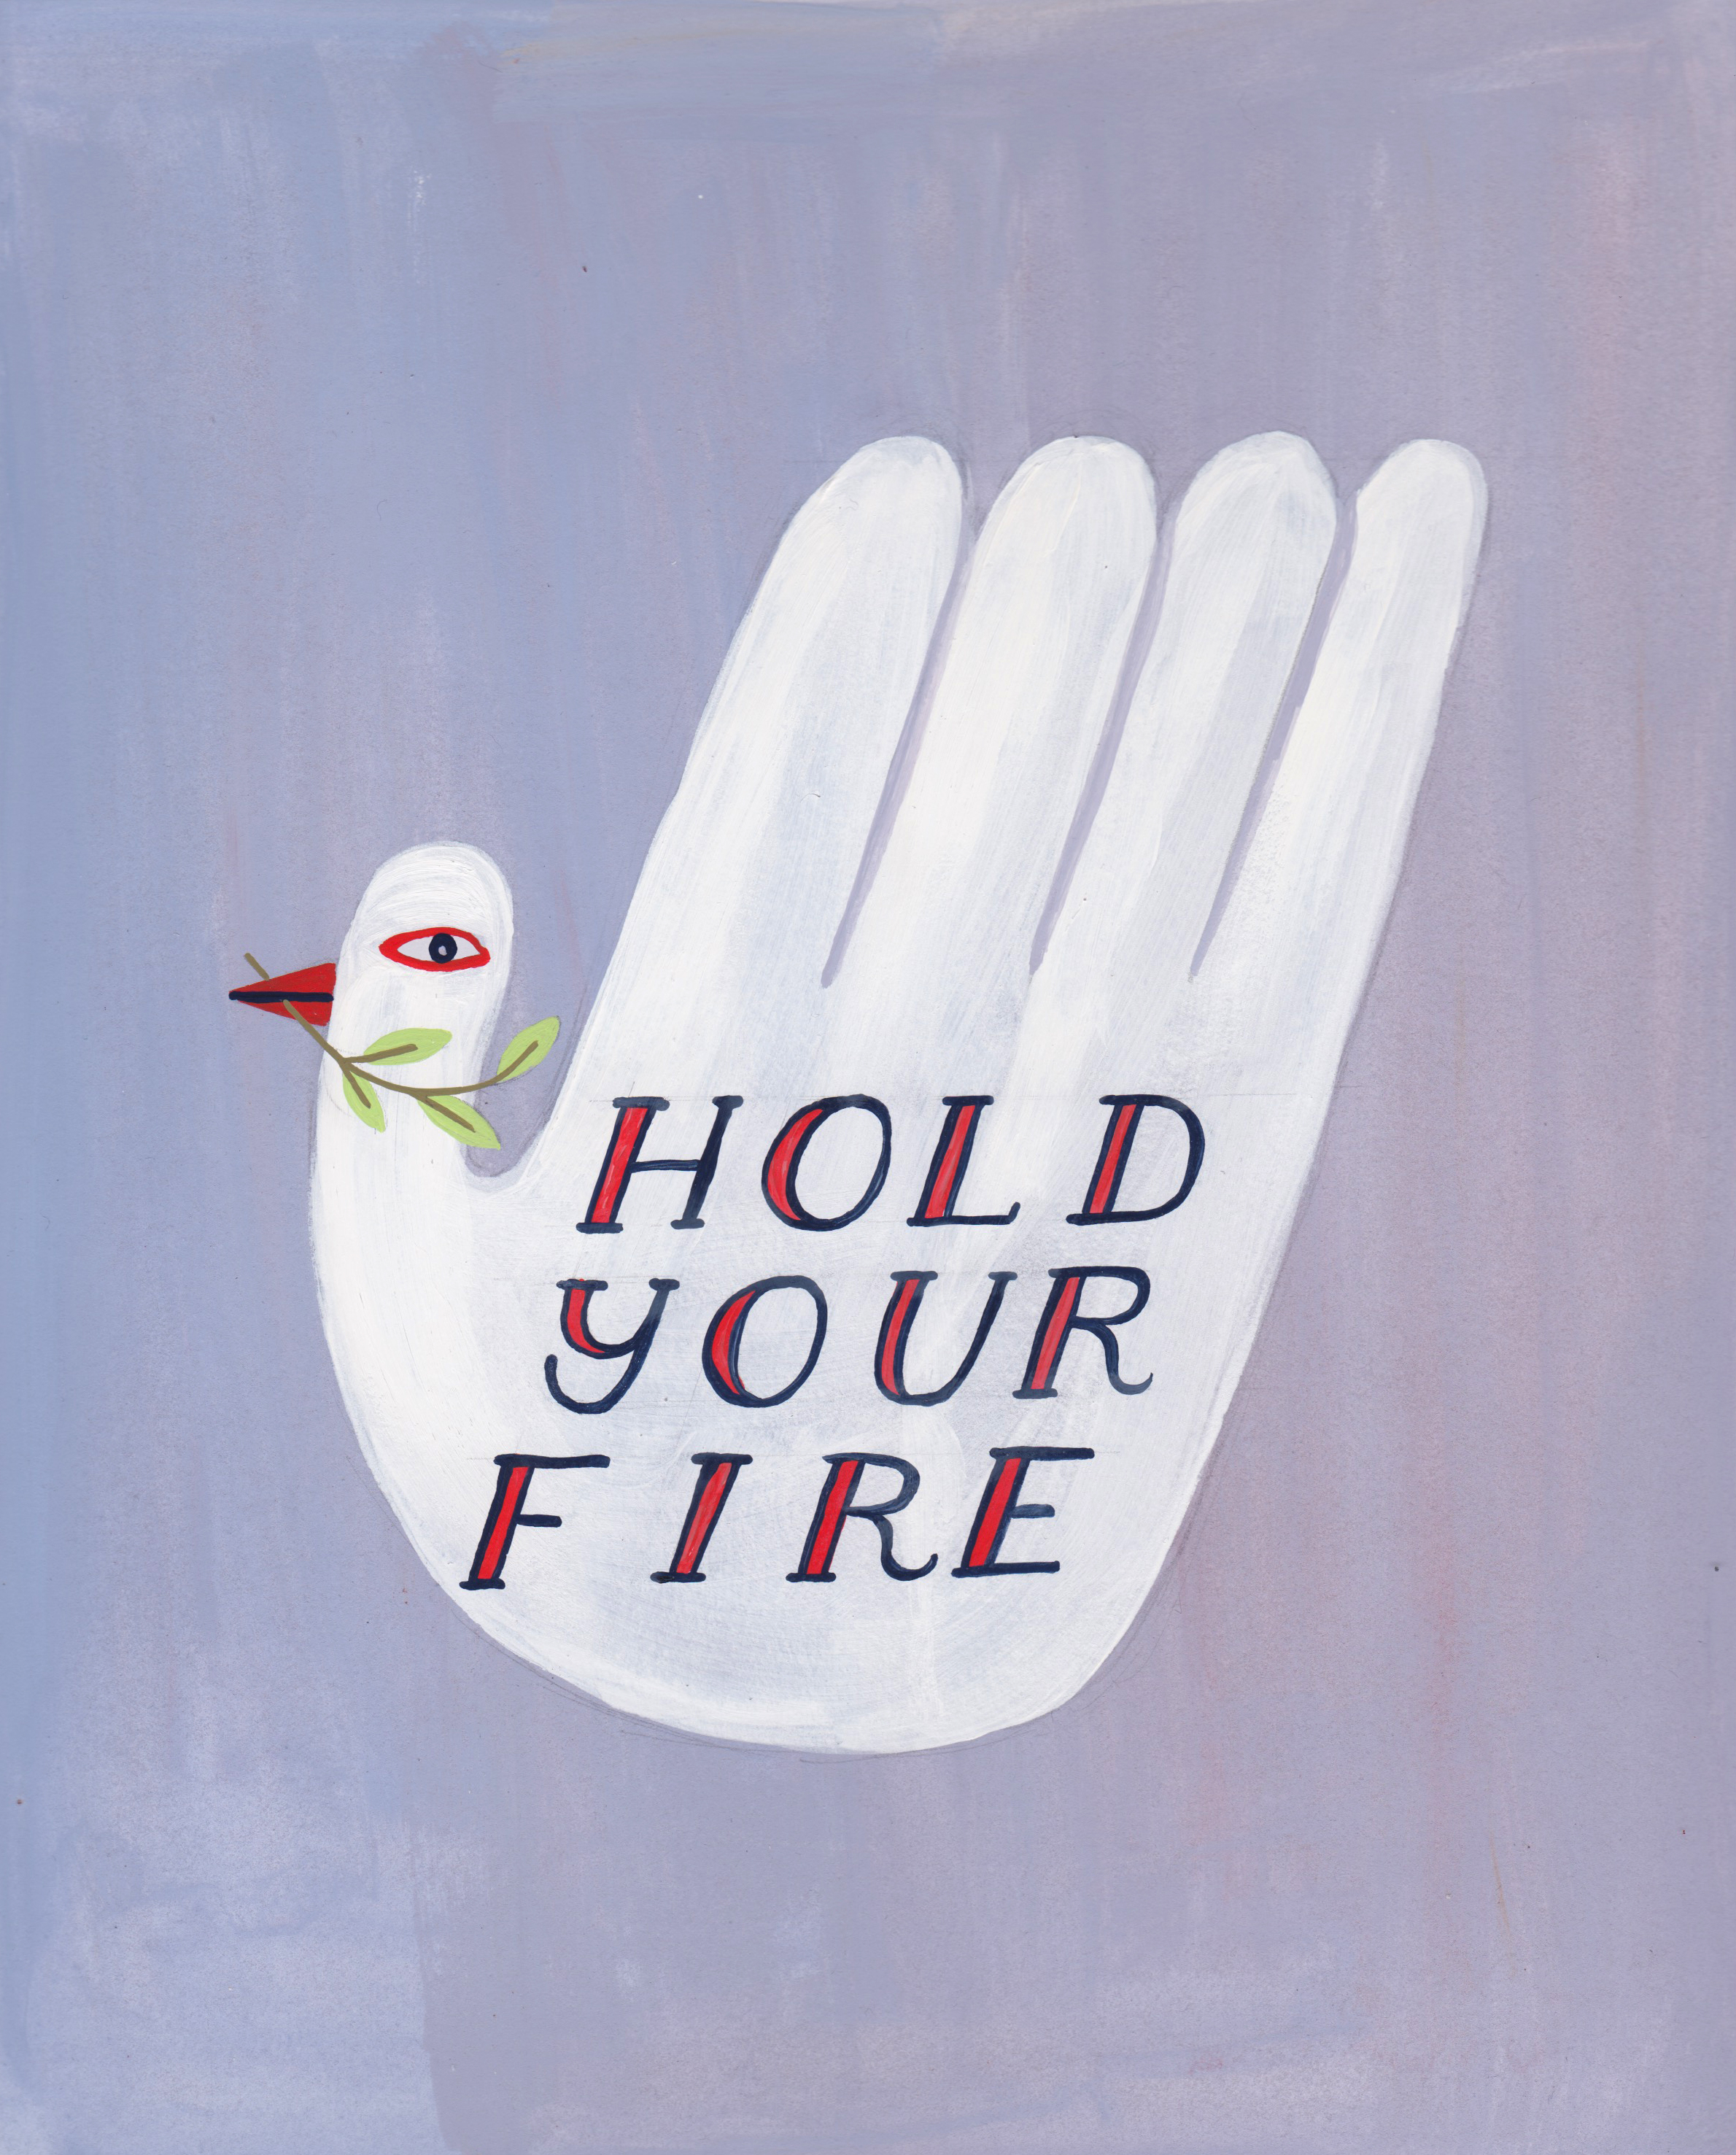 Hold Your Fire illustration by Kristina Filler